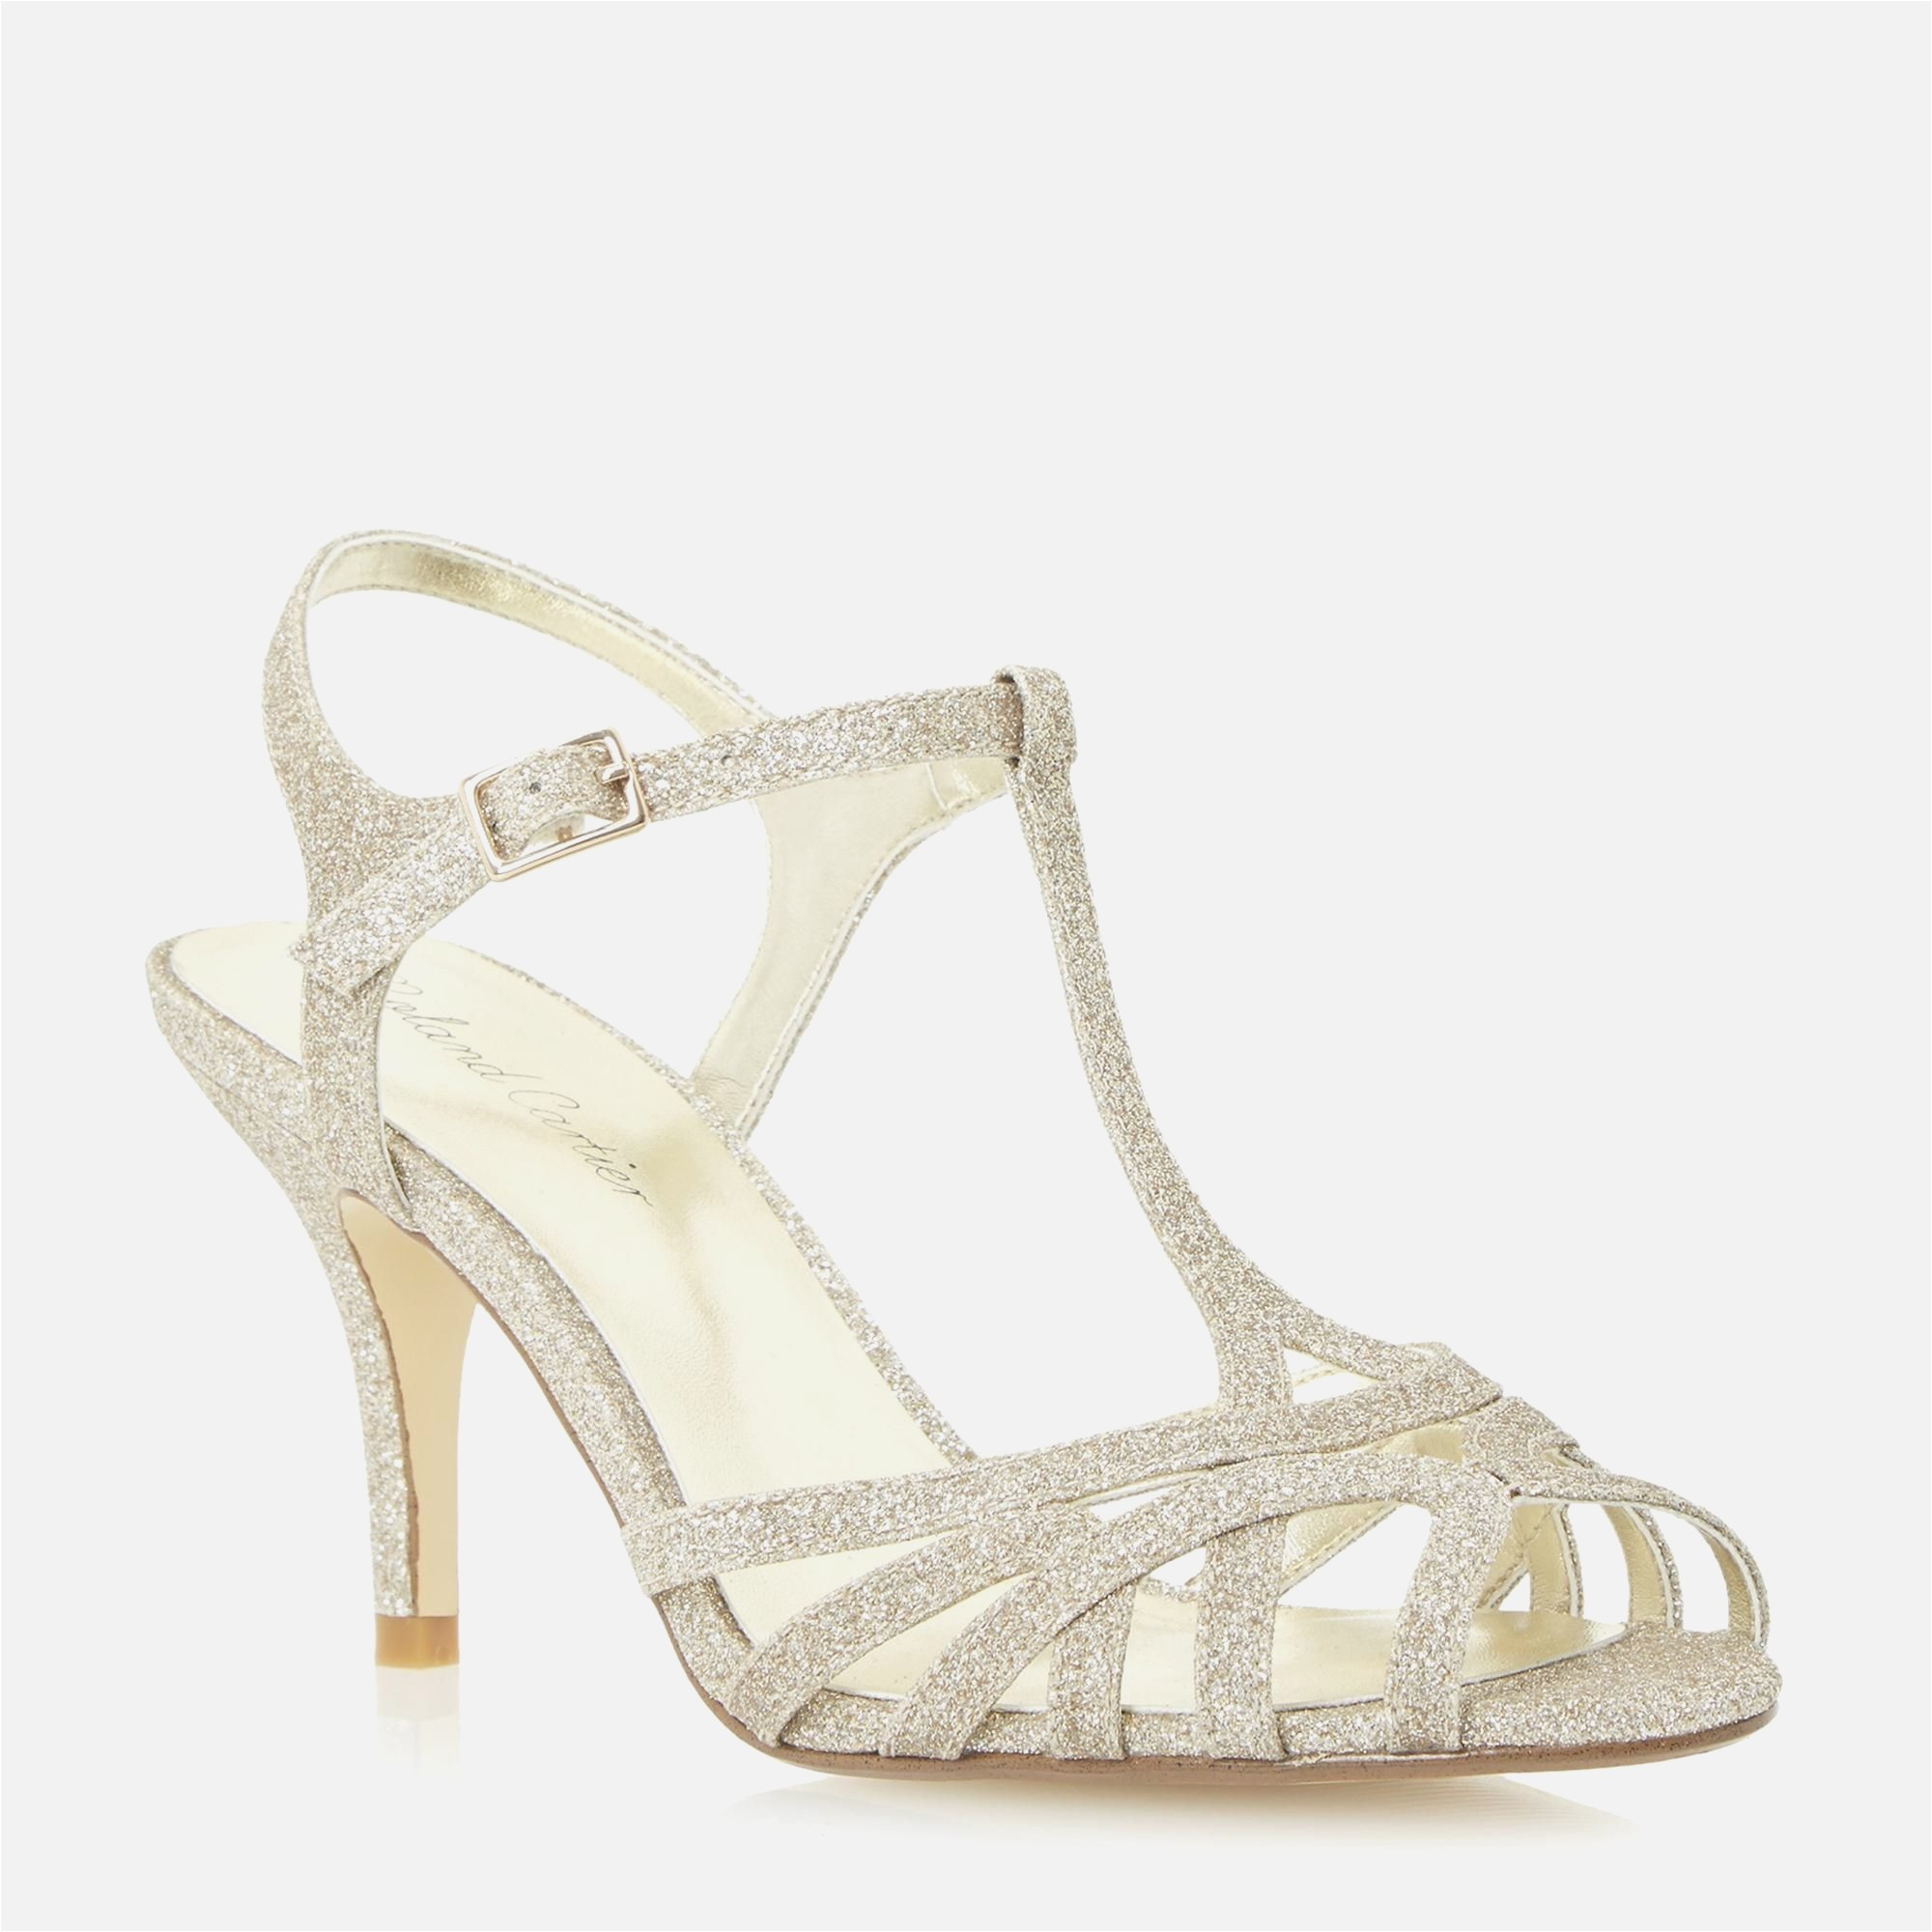 1 inch bridal shoes photo - 1